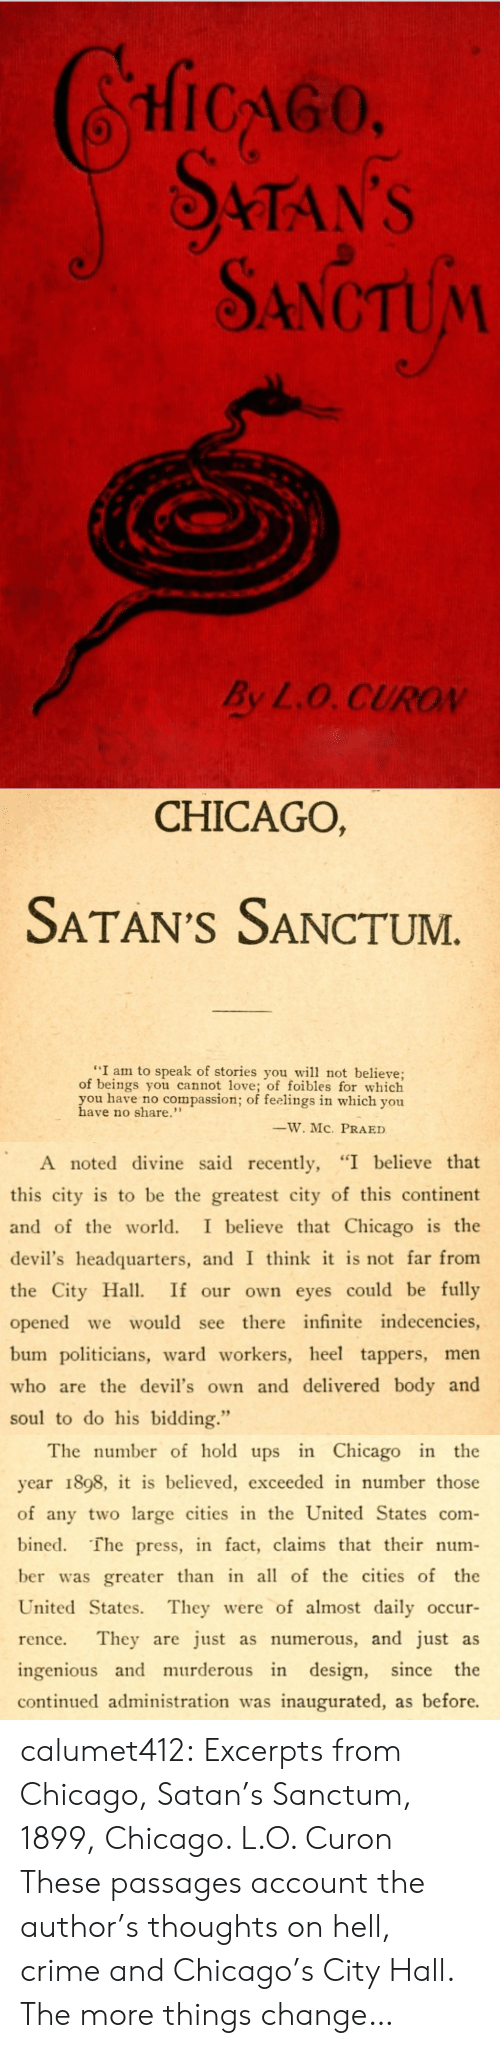 "ingenious: HicGo  STAN'S  SANCTUM  By L.O. CUROV   CHICAGO,  SATAN'S SANCTUM  ""I am to speak of stories you w not believe;  of beings you cannot love; of foibles for which  you have no compassion; of feelings in which you  have no share.""  ーW.MC.  PRA ED   A noted divine said recently, ""I believe that  this city is to be the greatest city of this continent  and of the world. I believe that Chicago is the  devil's headquarters, and I think it is not far from  the City Ha If our own eyes could be fully  opened we would see there infinite indecencies,  bum politicians, ward workers, heel tappers, men  who are the devil's own and delivered body and  soul to do his bidding.""   The number of hold ups in Chicago in the  year 1898, it is believed, exceeded in number those  of any two large cities in the United States com-  bined. The press, in fact, claims that their num-  ber was greater than in all of the cities of the  United States. They were of almost daily occur  rence. They are just as numerous, and just as  ingenious and murderous in design, since the  continued administration was inaugurated, as before. calumet412:  Excerpts from Chicago, Satan's Sanctum, 1899, Chicago. L.O. Curon These passages account the author's thoughts on hell, crime and Chicago's City Hall. The more things change…"